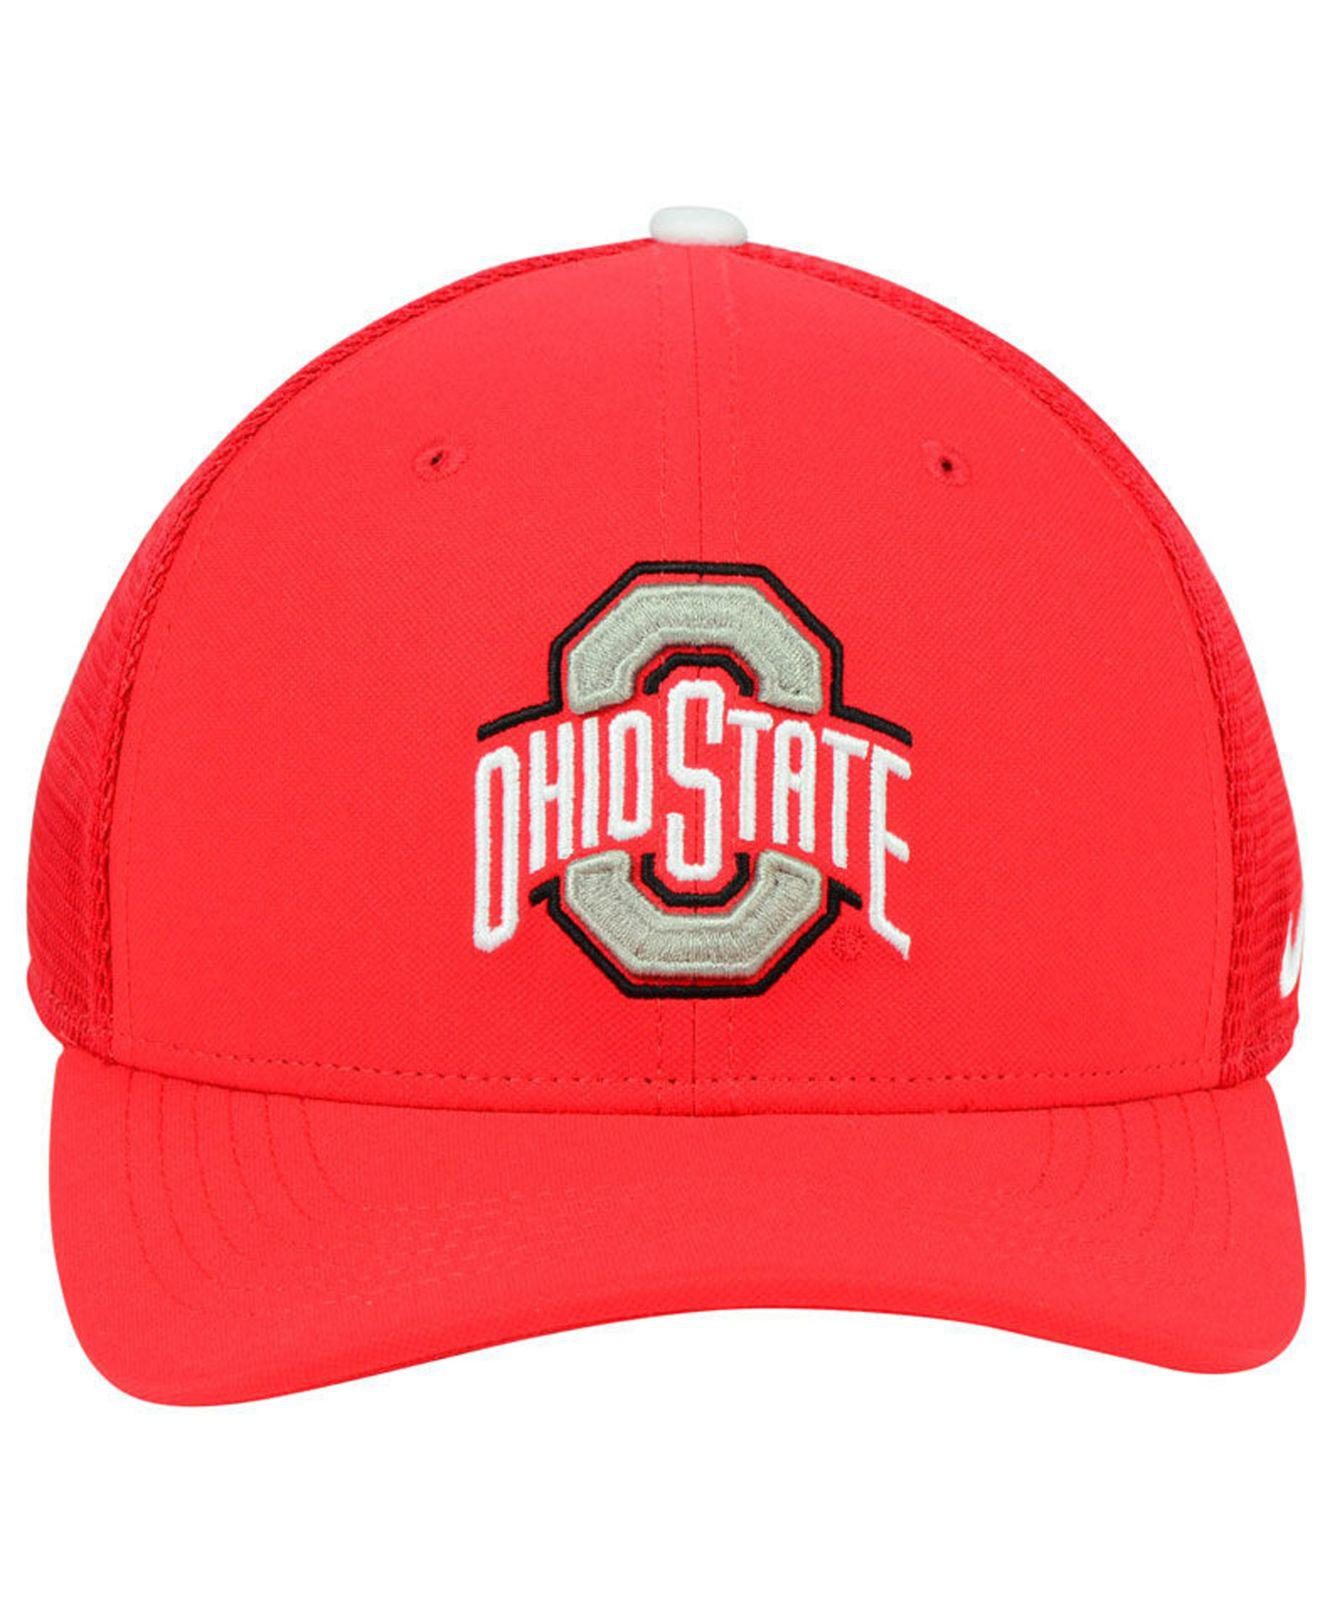 81e76826e67 ... authentic lyst nike ohio state buckeyes aerobill swoosh cap in red for  men d68ec dbba5